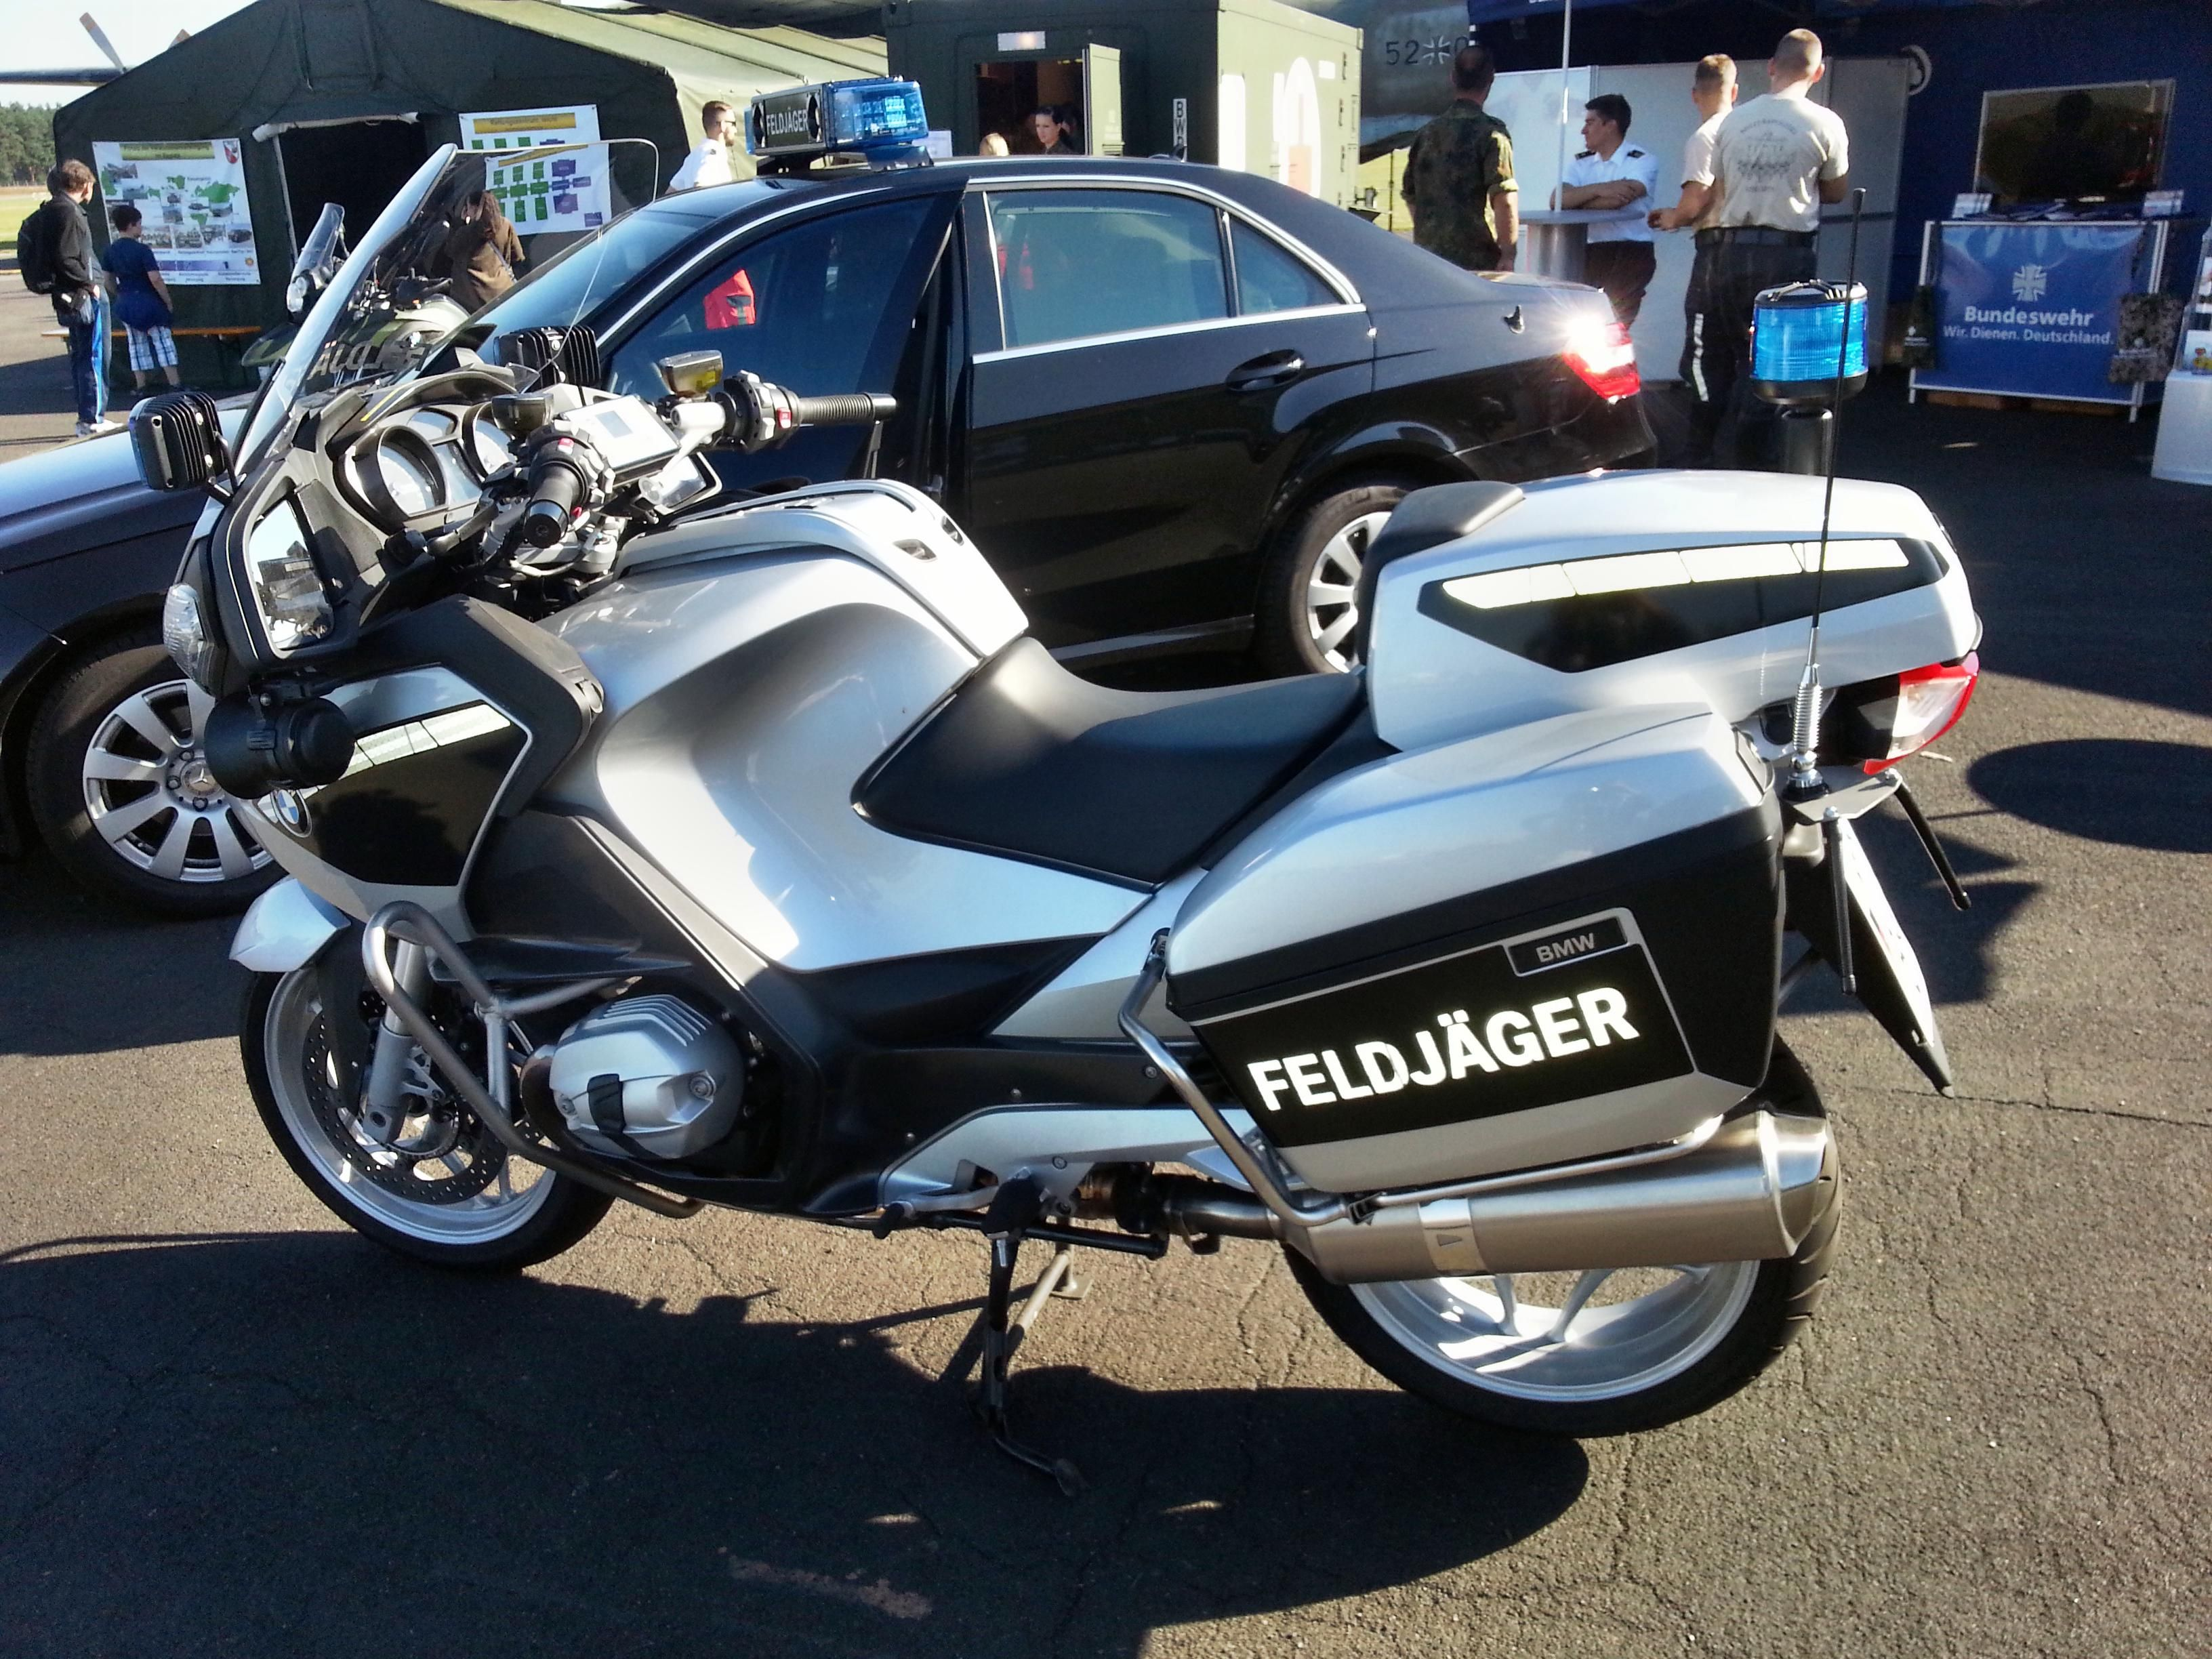 German Military Police Motorcycle With Images Motorcycle